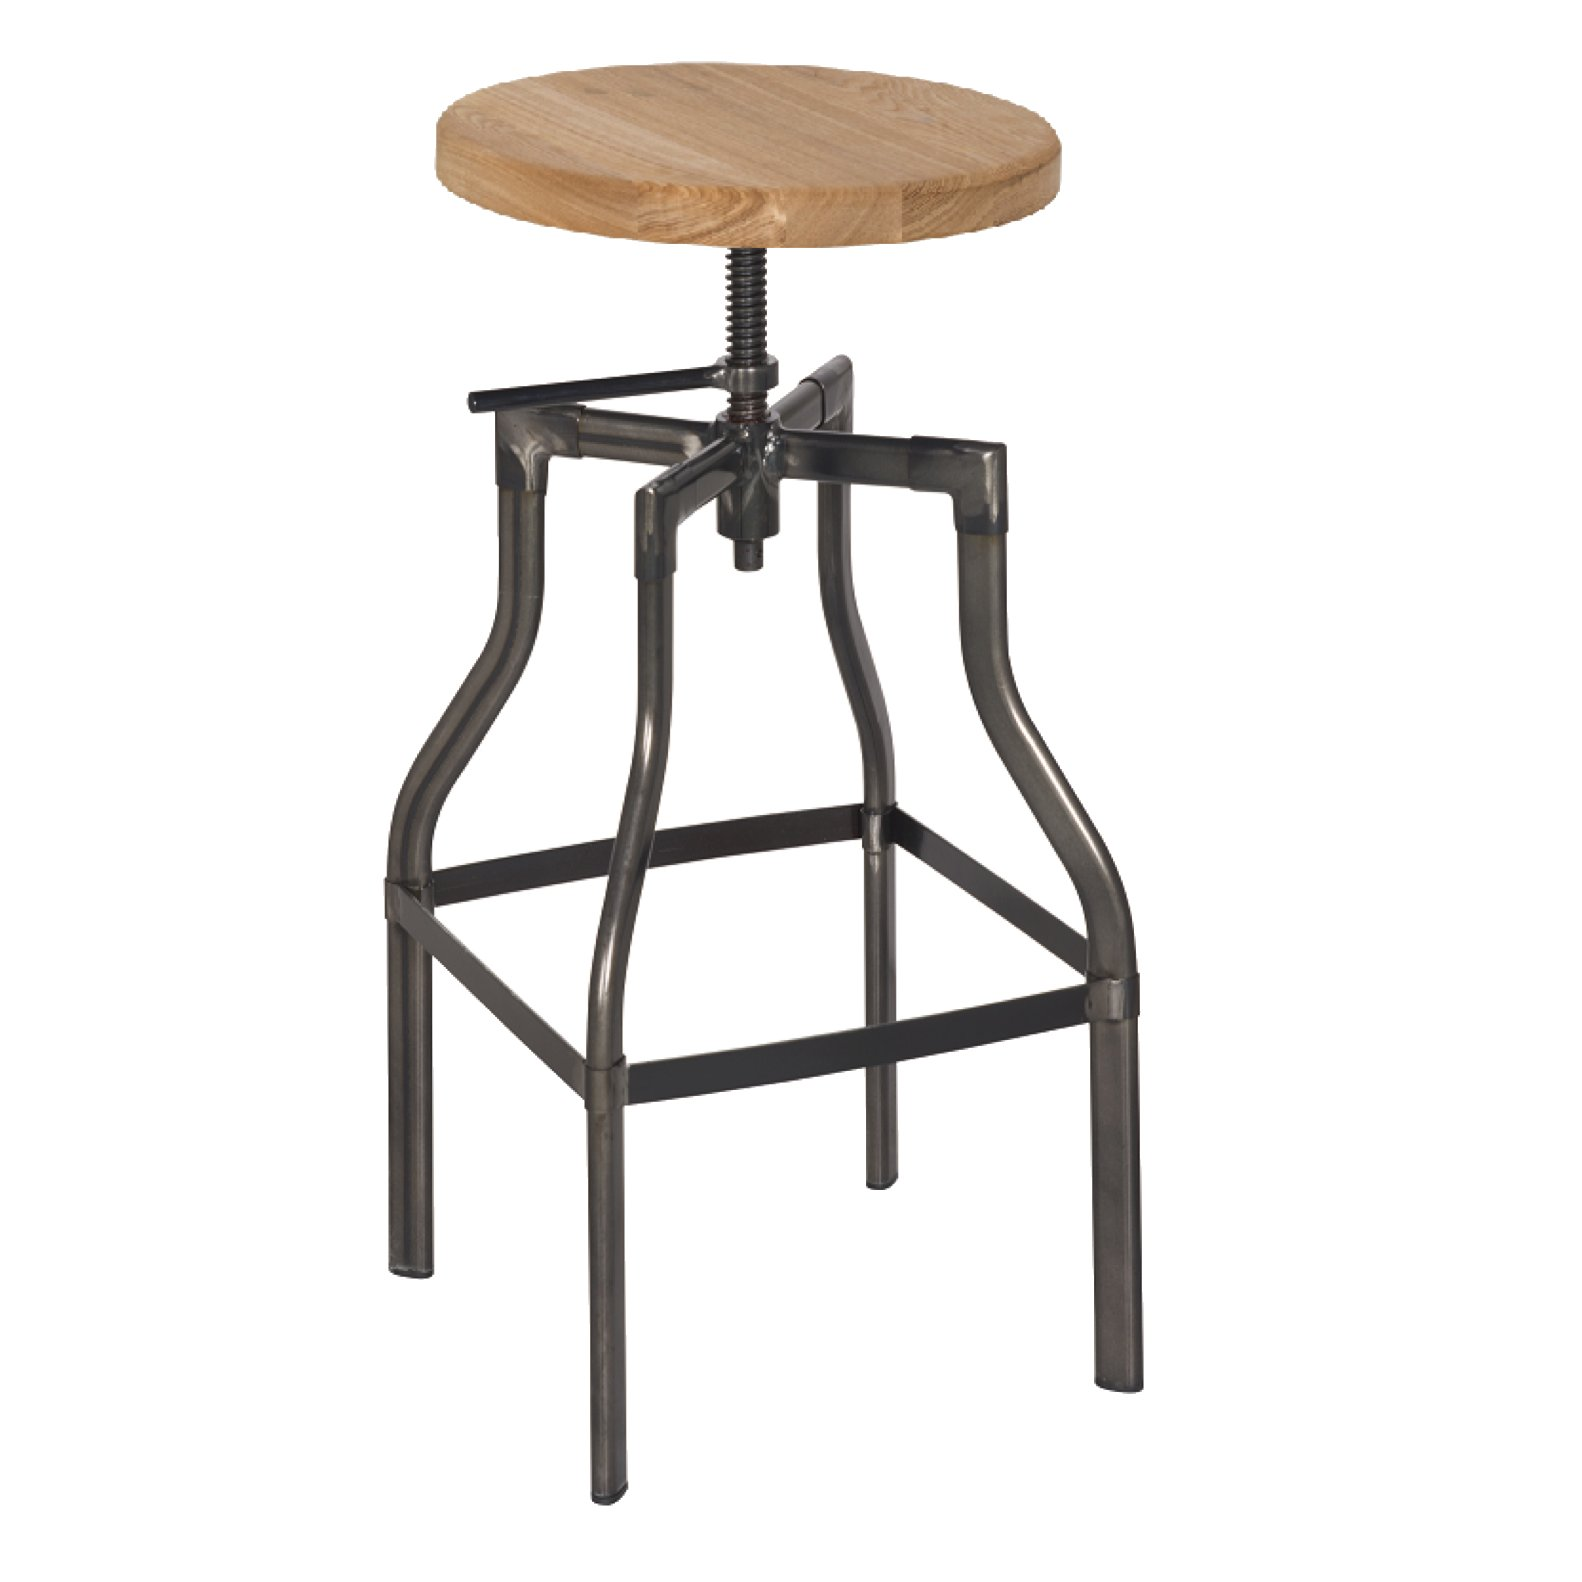 Torque Industrial Bar Stool ByDezign NZ Ltd : Torque industrial stool indoor adjustable nz from www.bydezignfurniture.co.nz size 1582 x 1582 jpeg 85kB